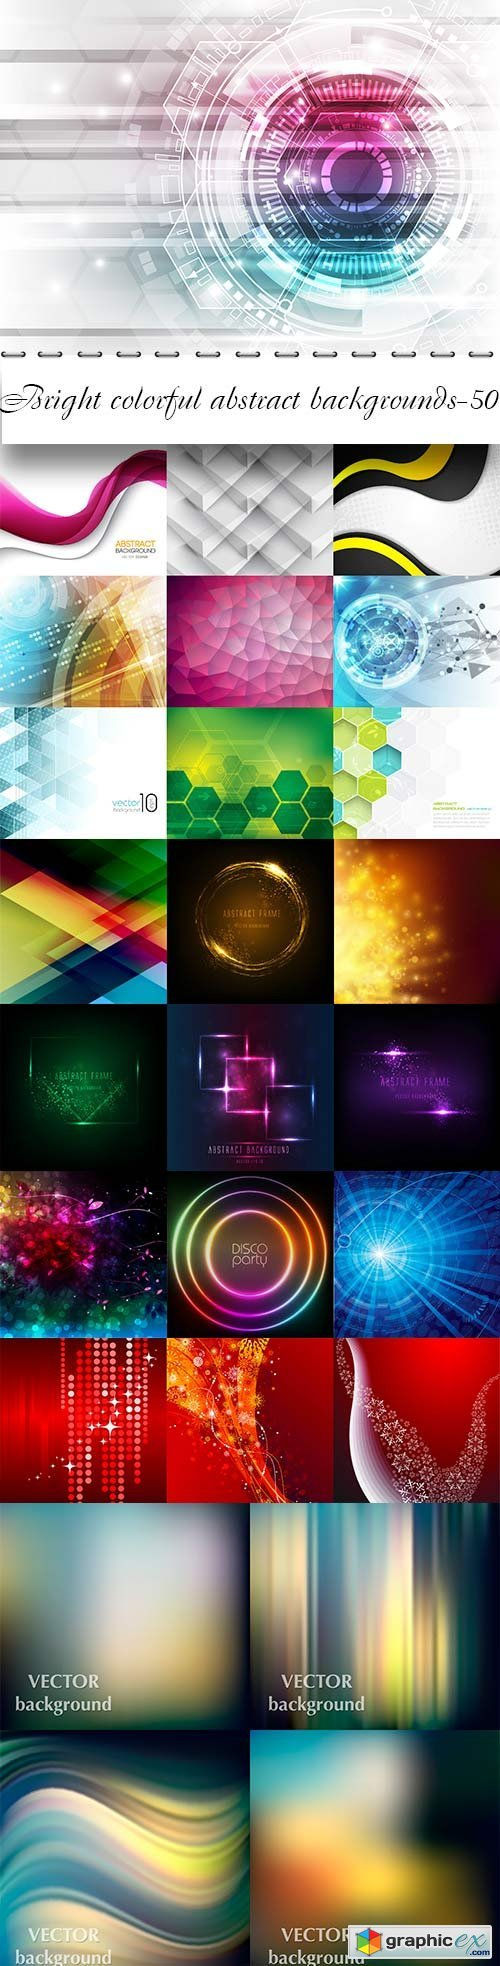 Bright colorful abstract backgrounds vector -51